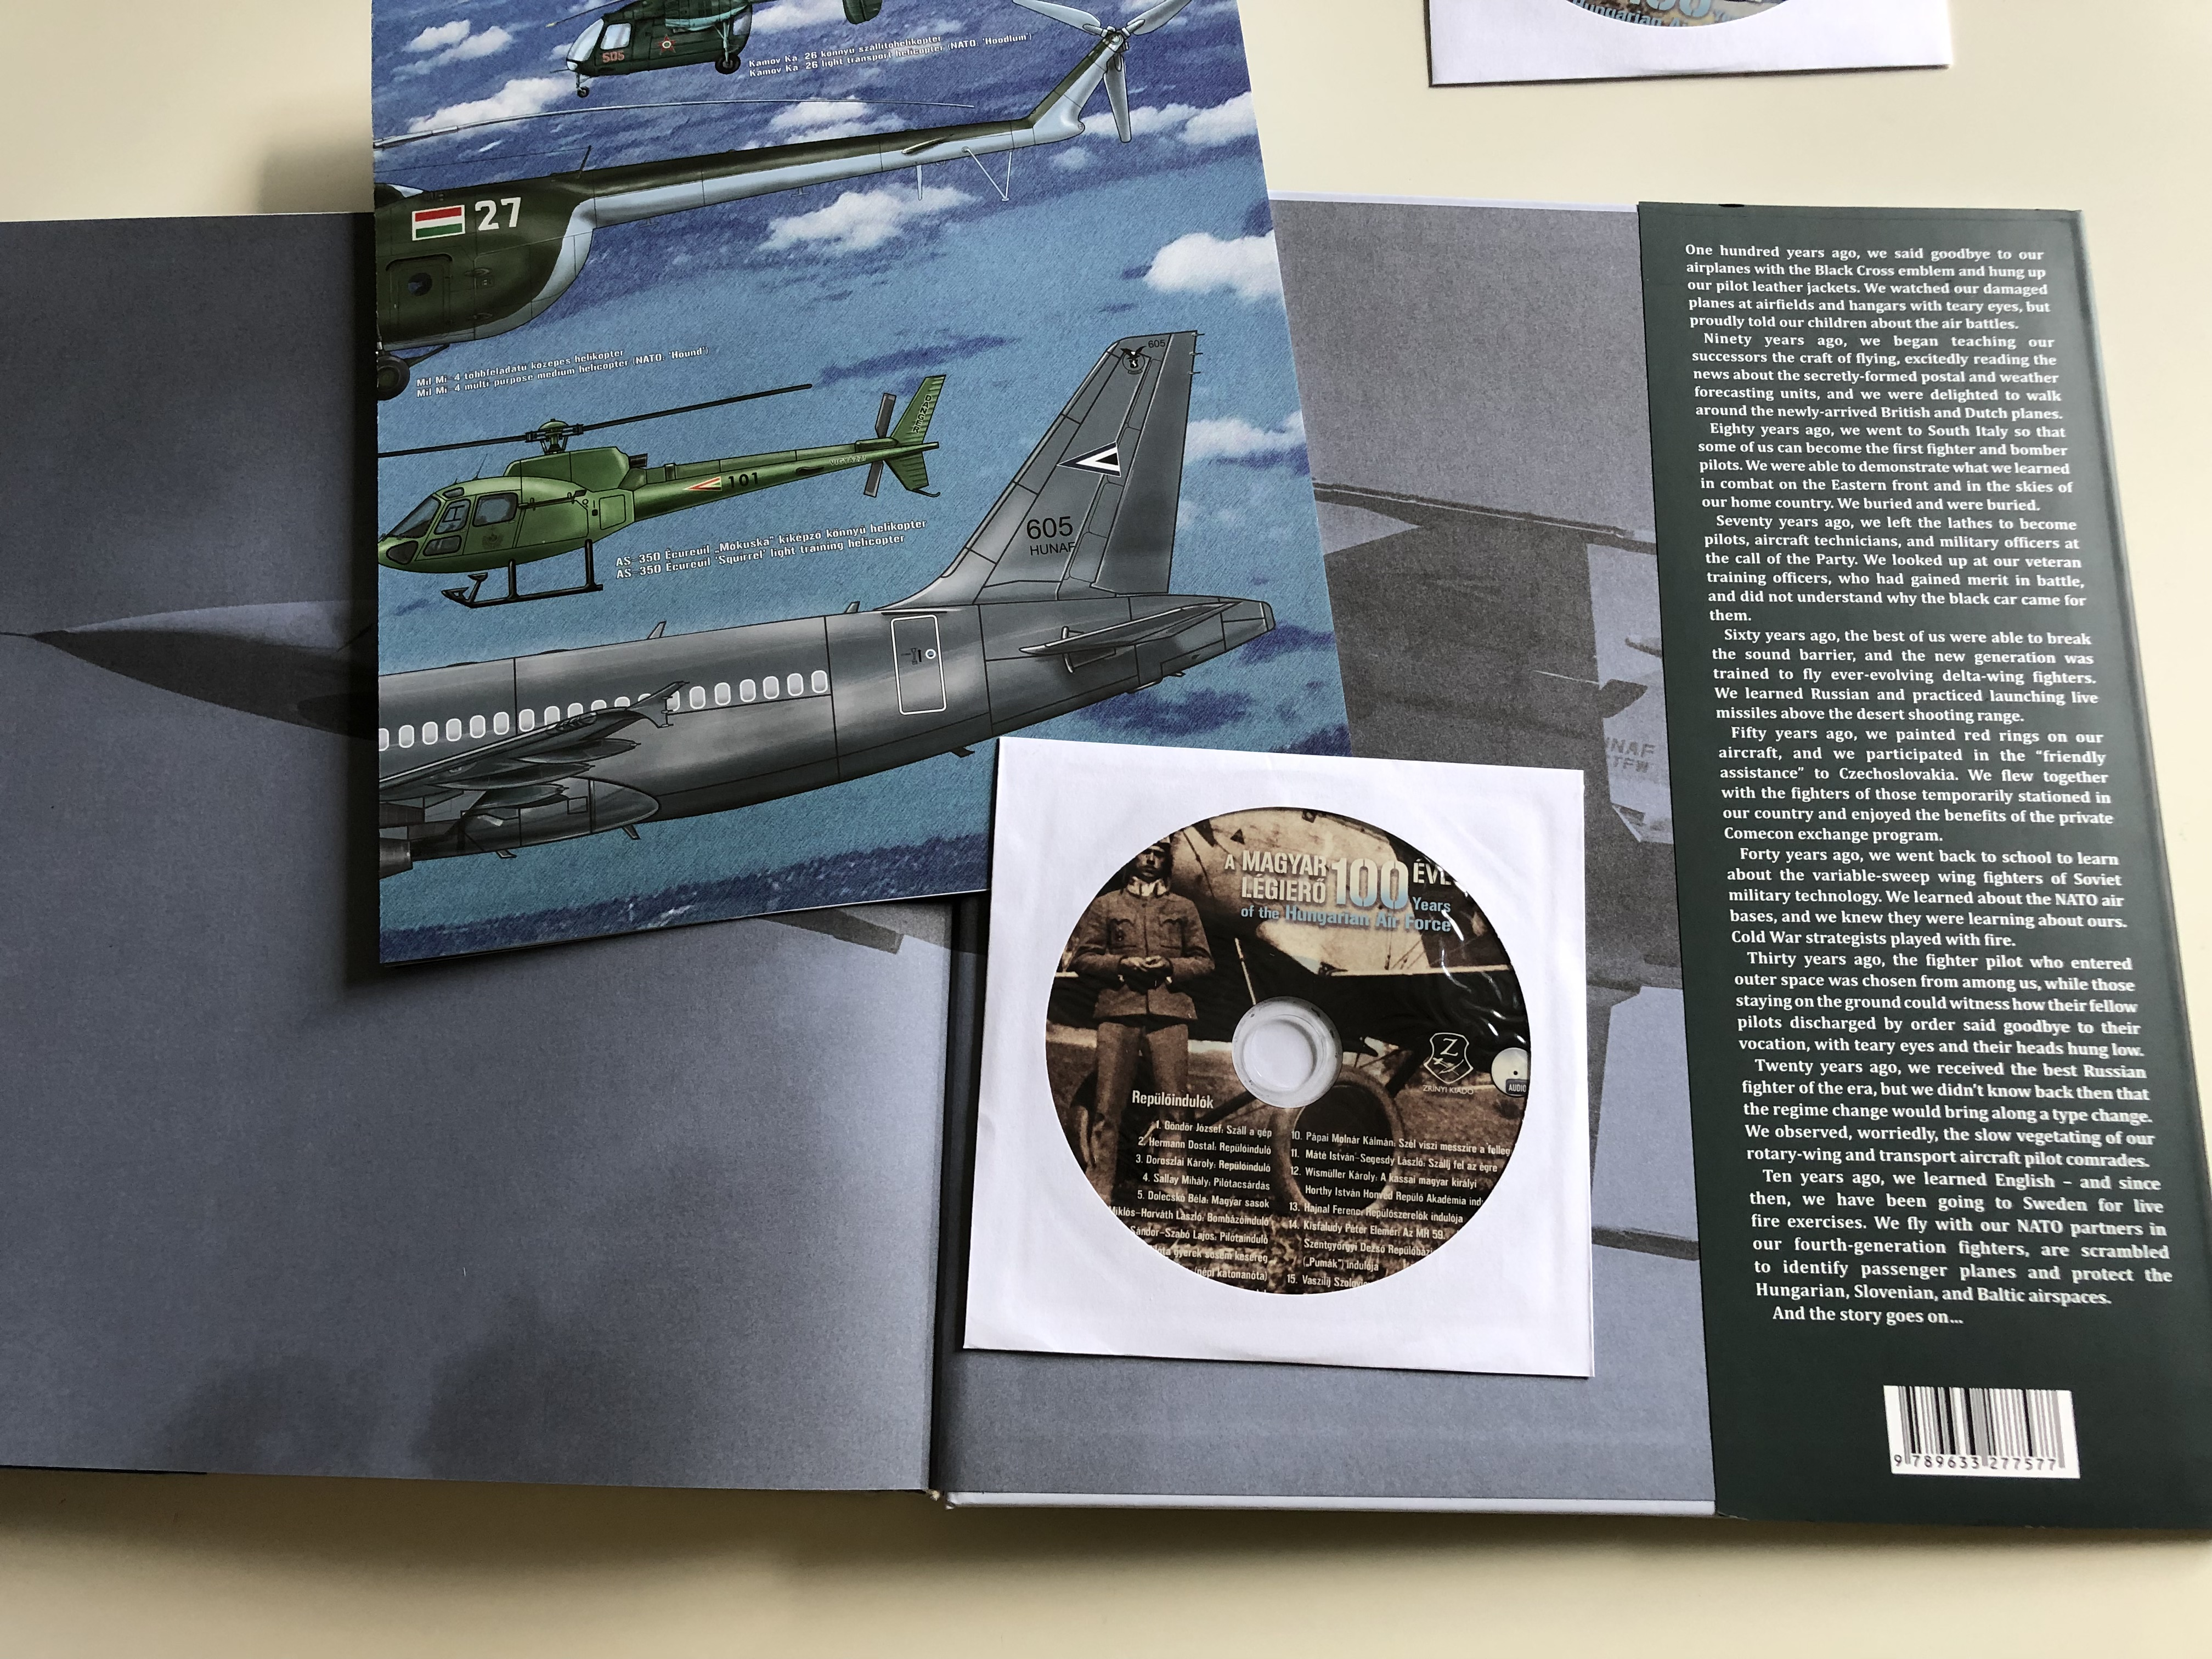 a-magyar-l-gier-100-ve-100-years-of-the-hungarian-air-force-with-film-music-and-poster-history-of-the-hungarian-airforce-hungarian-english-bilingual-album-zr-nyi-kiad-25-.jpg